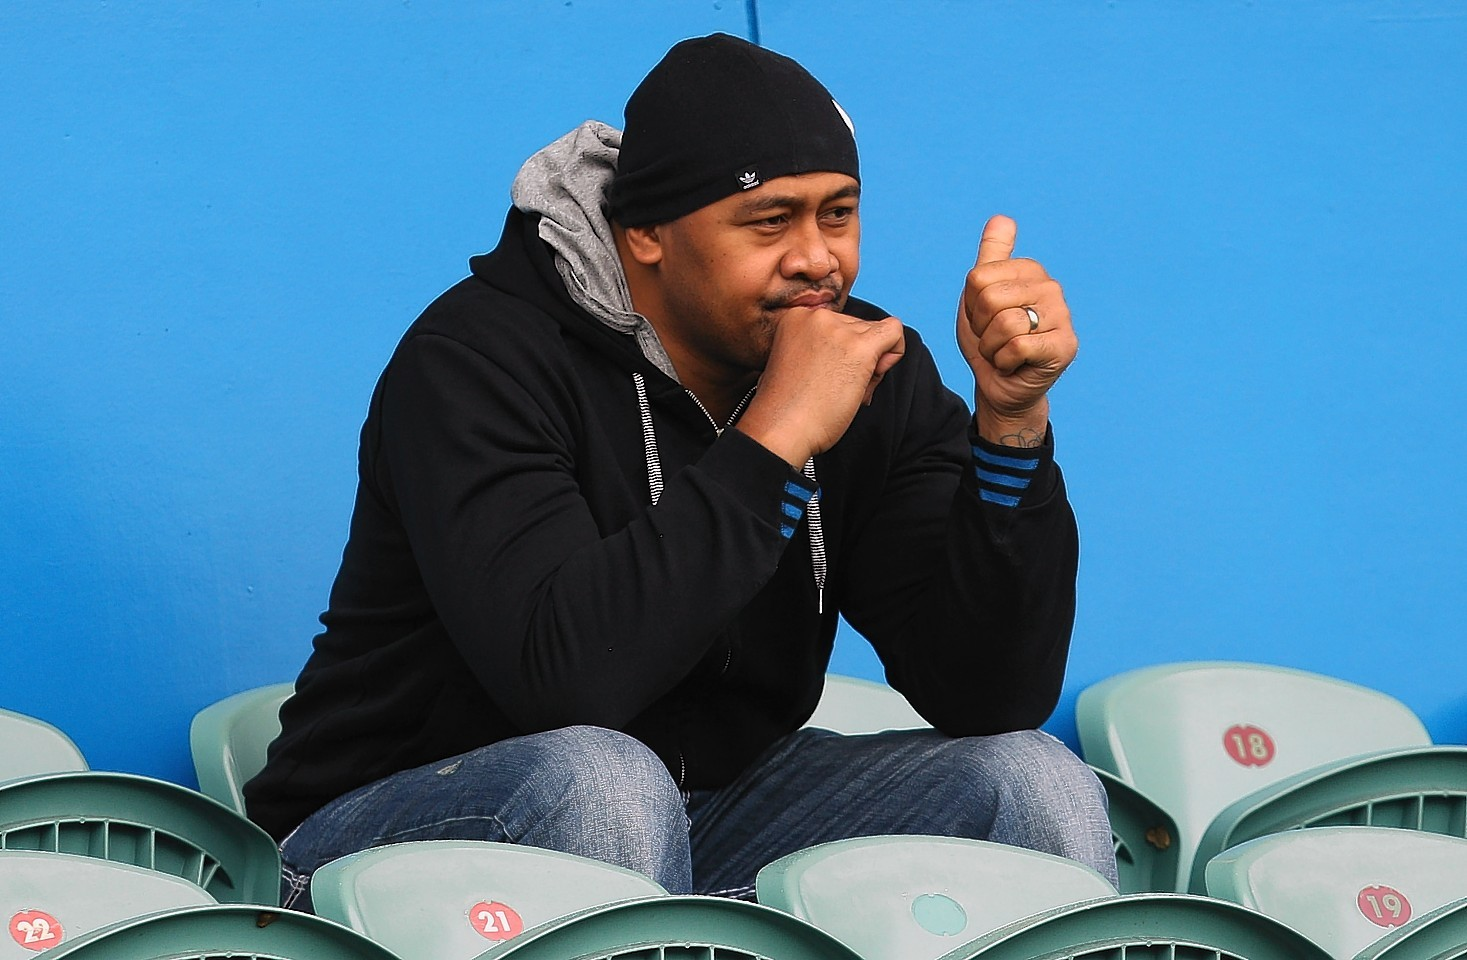 Lomu watches the All Blacks from the stands in 2011